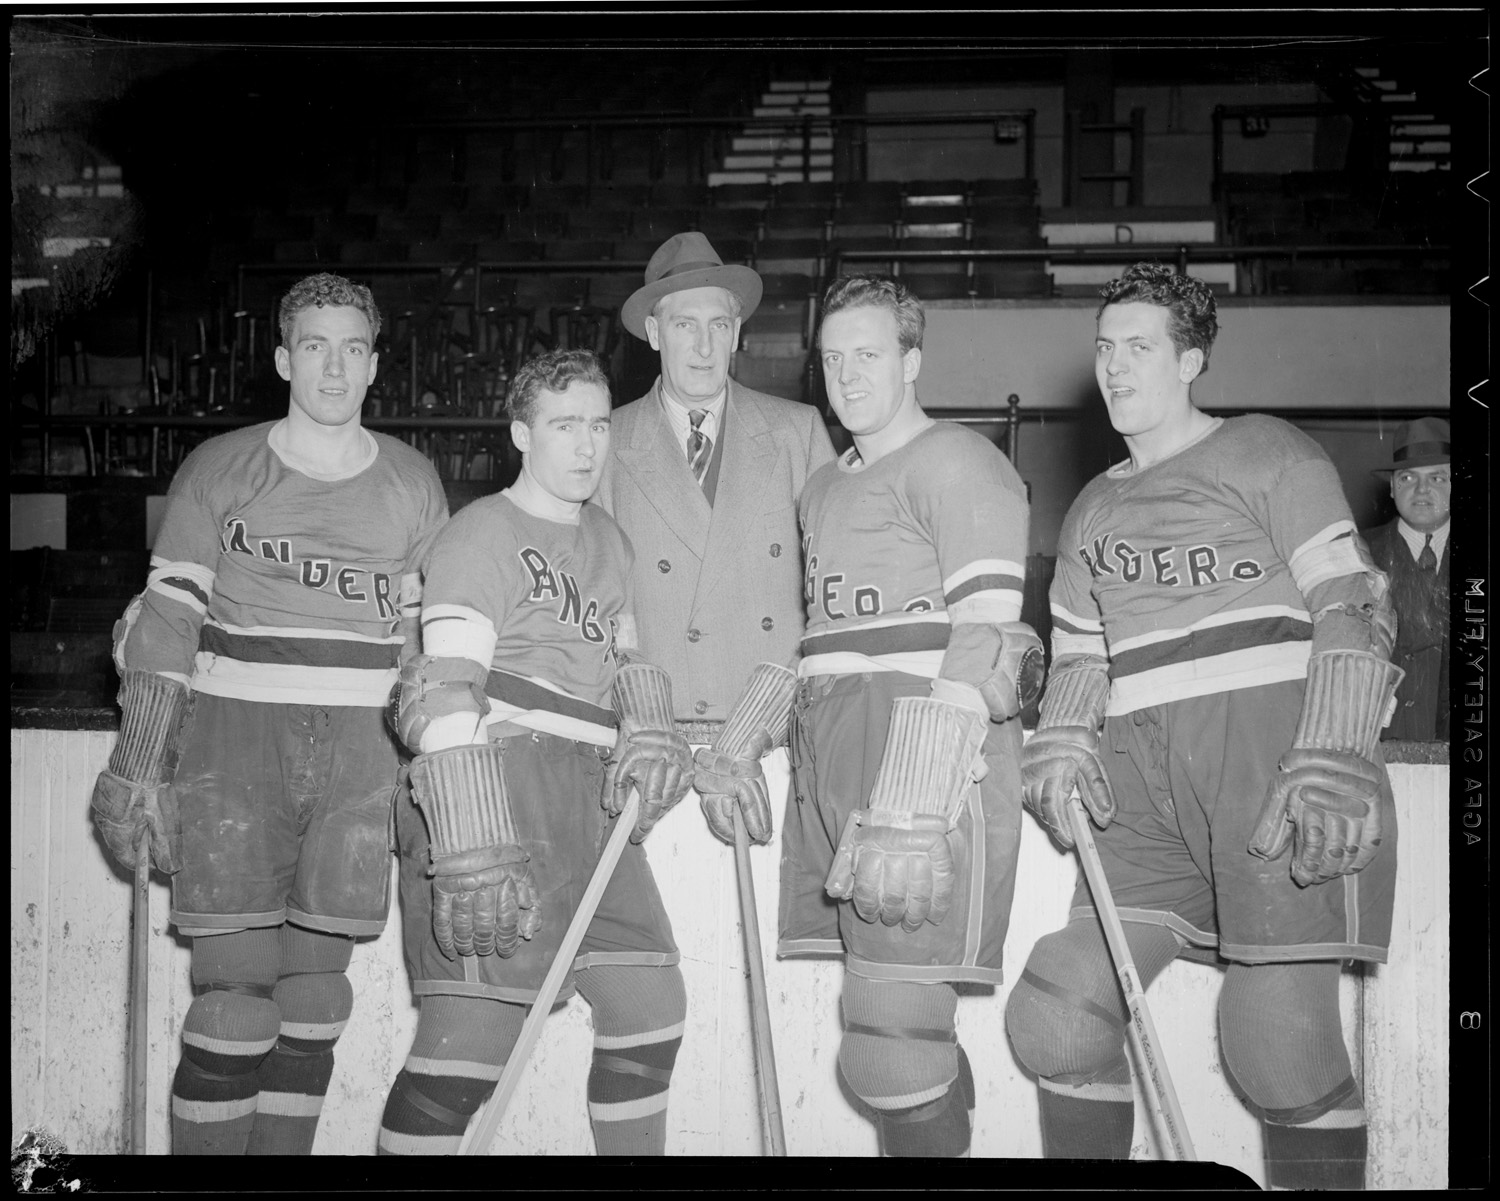 Families Firm: New York Rangers GM Lester Patrick pauses in Boston circa 1939 with his sons, on his left, Lynn and Muzz Patrick. To his right are brother Neil and Mac Colville. (Photo: Courtesy of the Boston Public Library, Leslie Jones Collection)